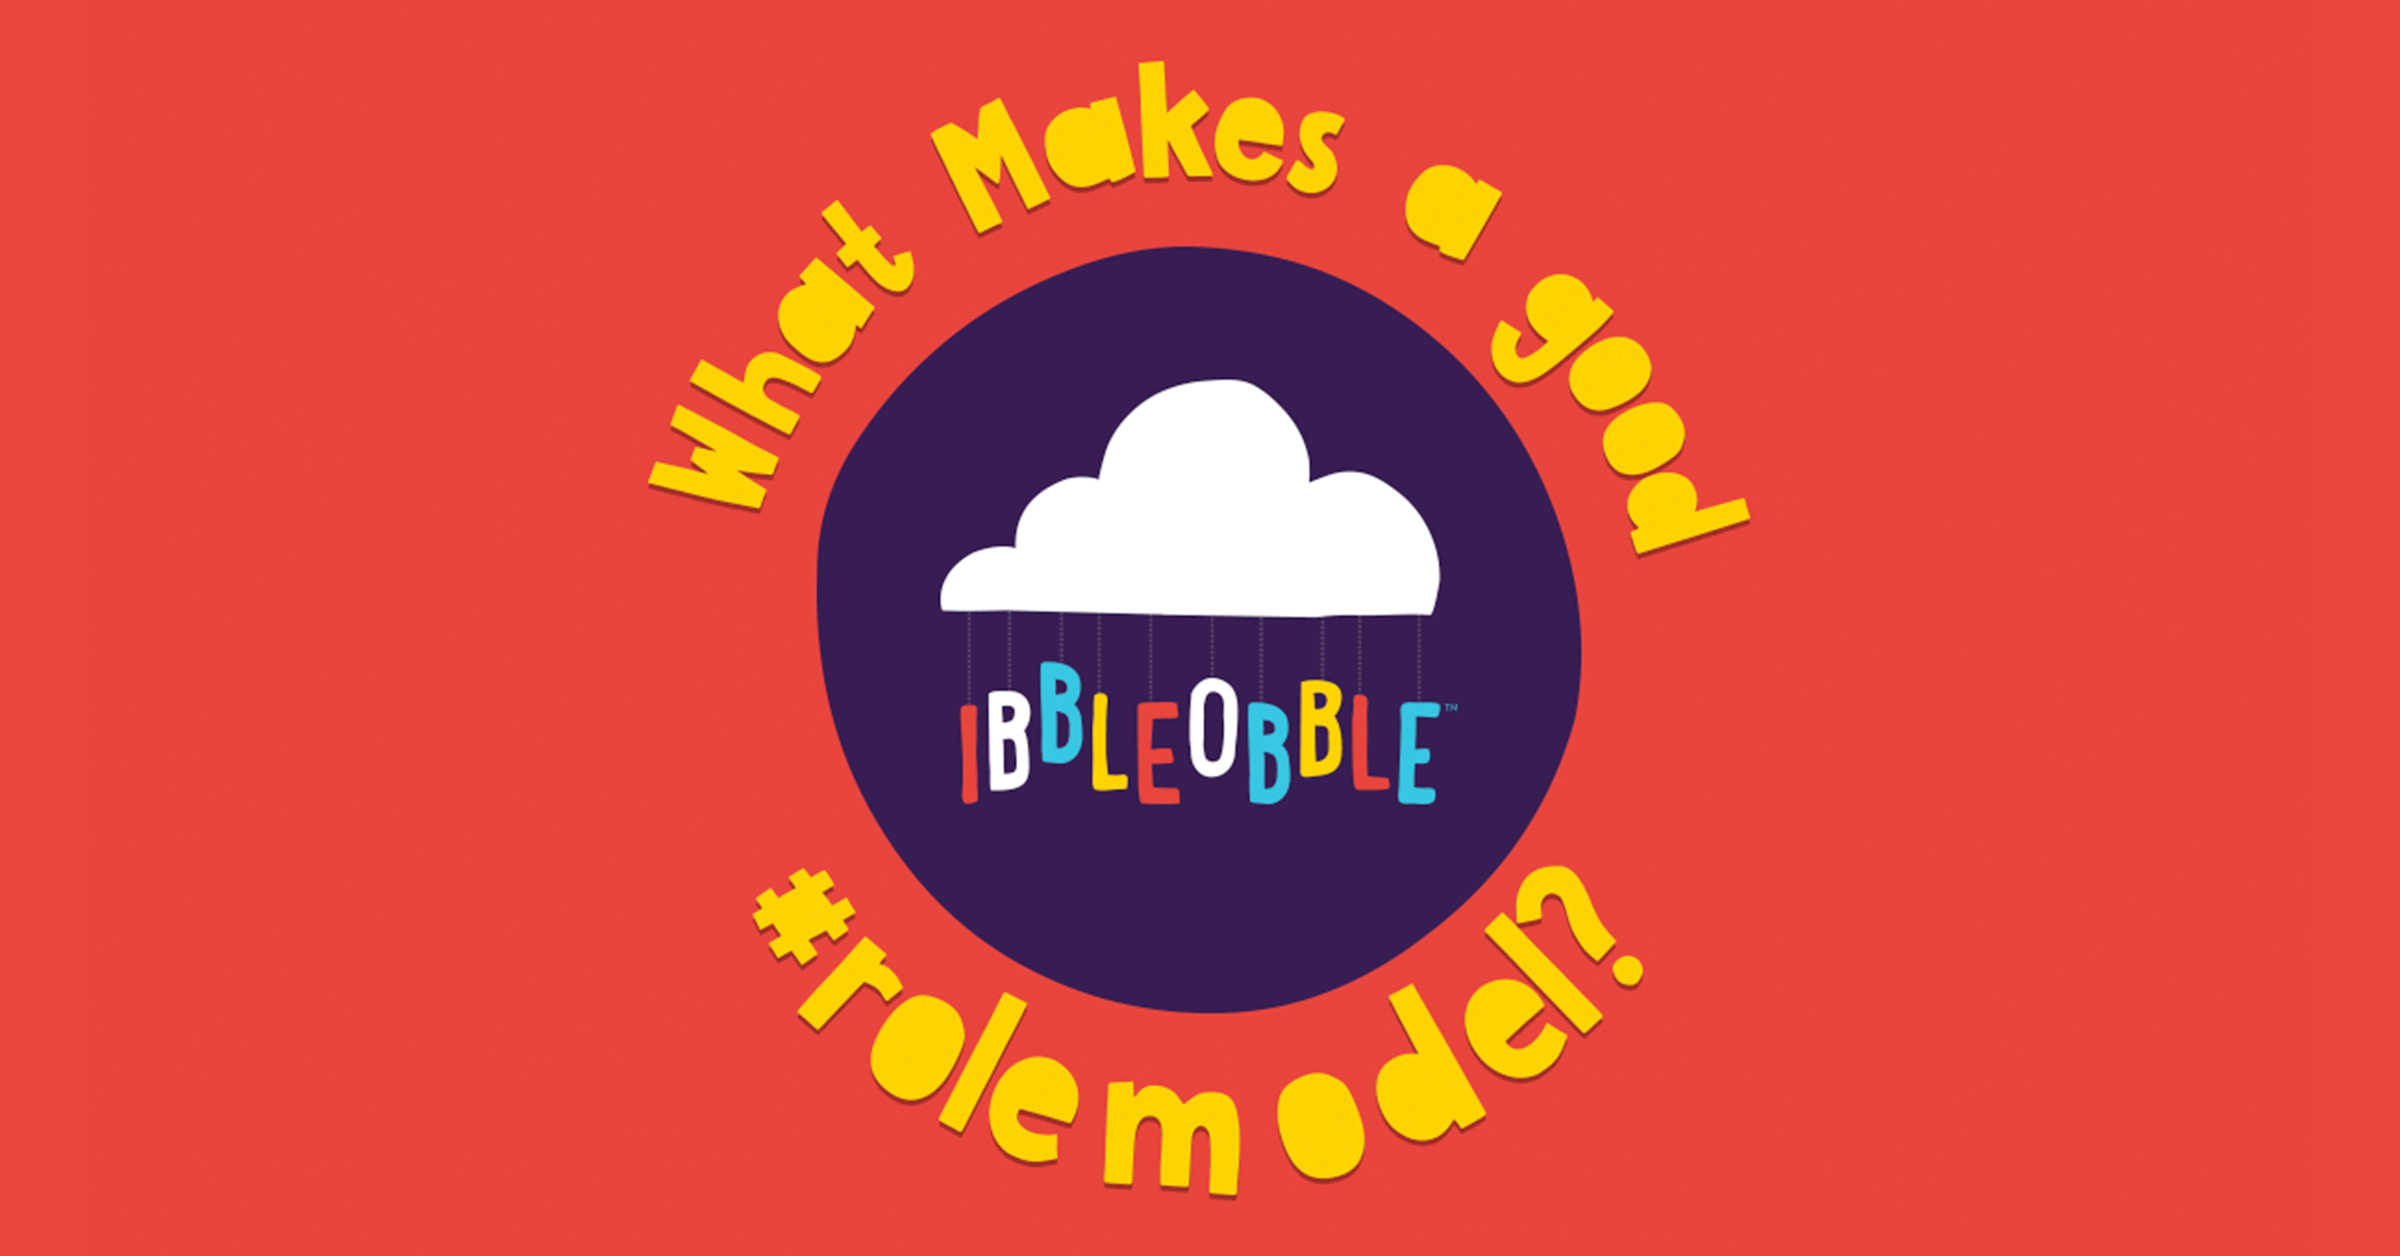 What makes a good #ibbleobble role model